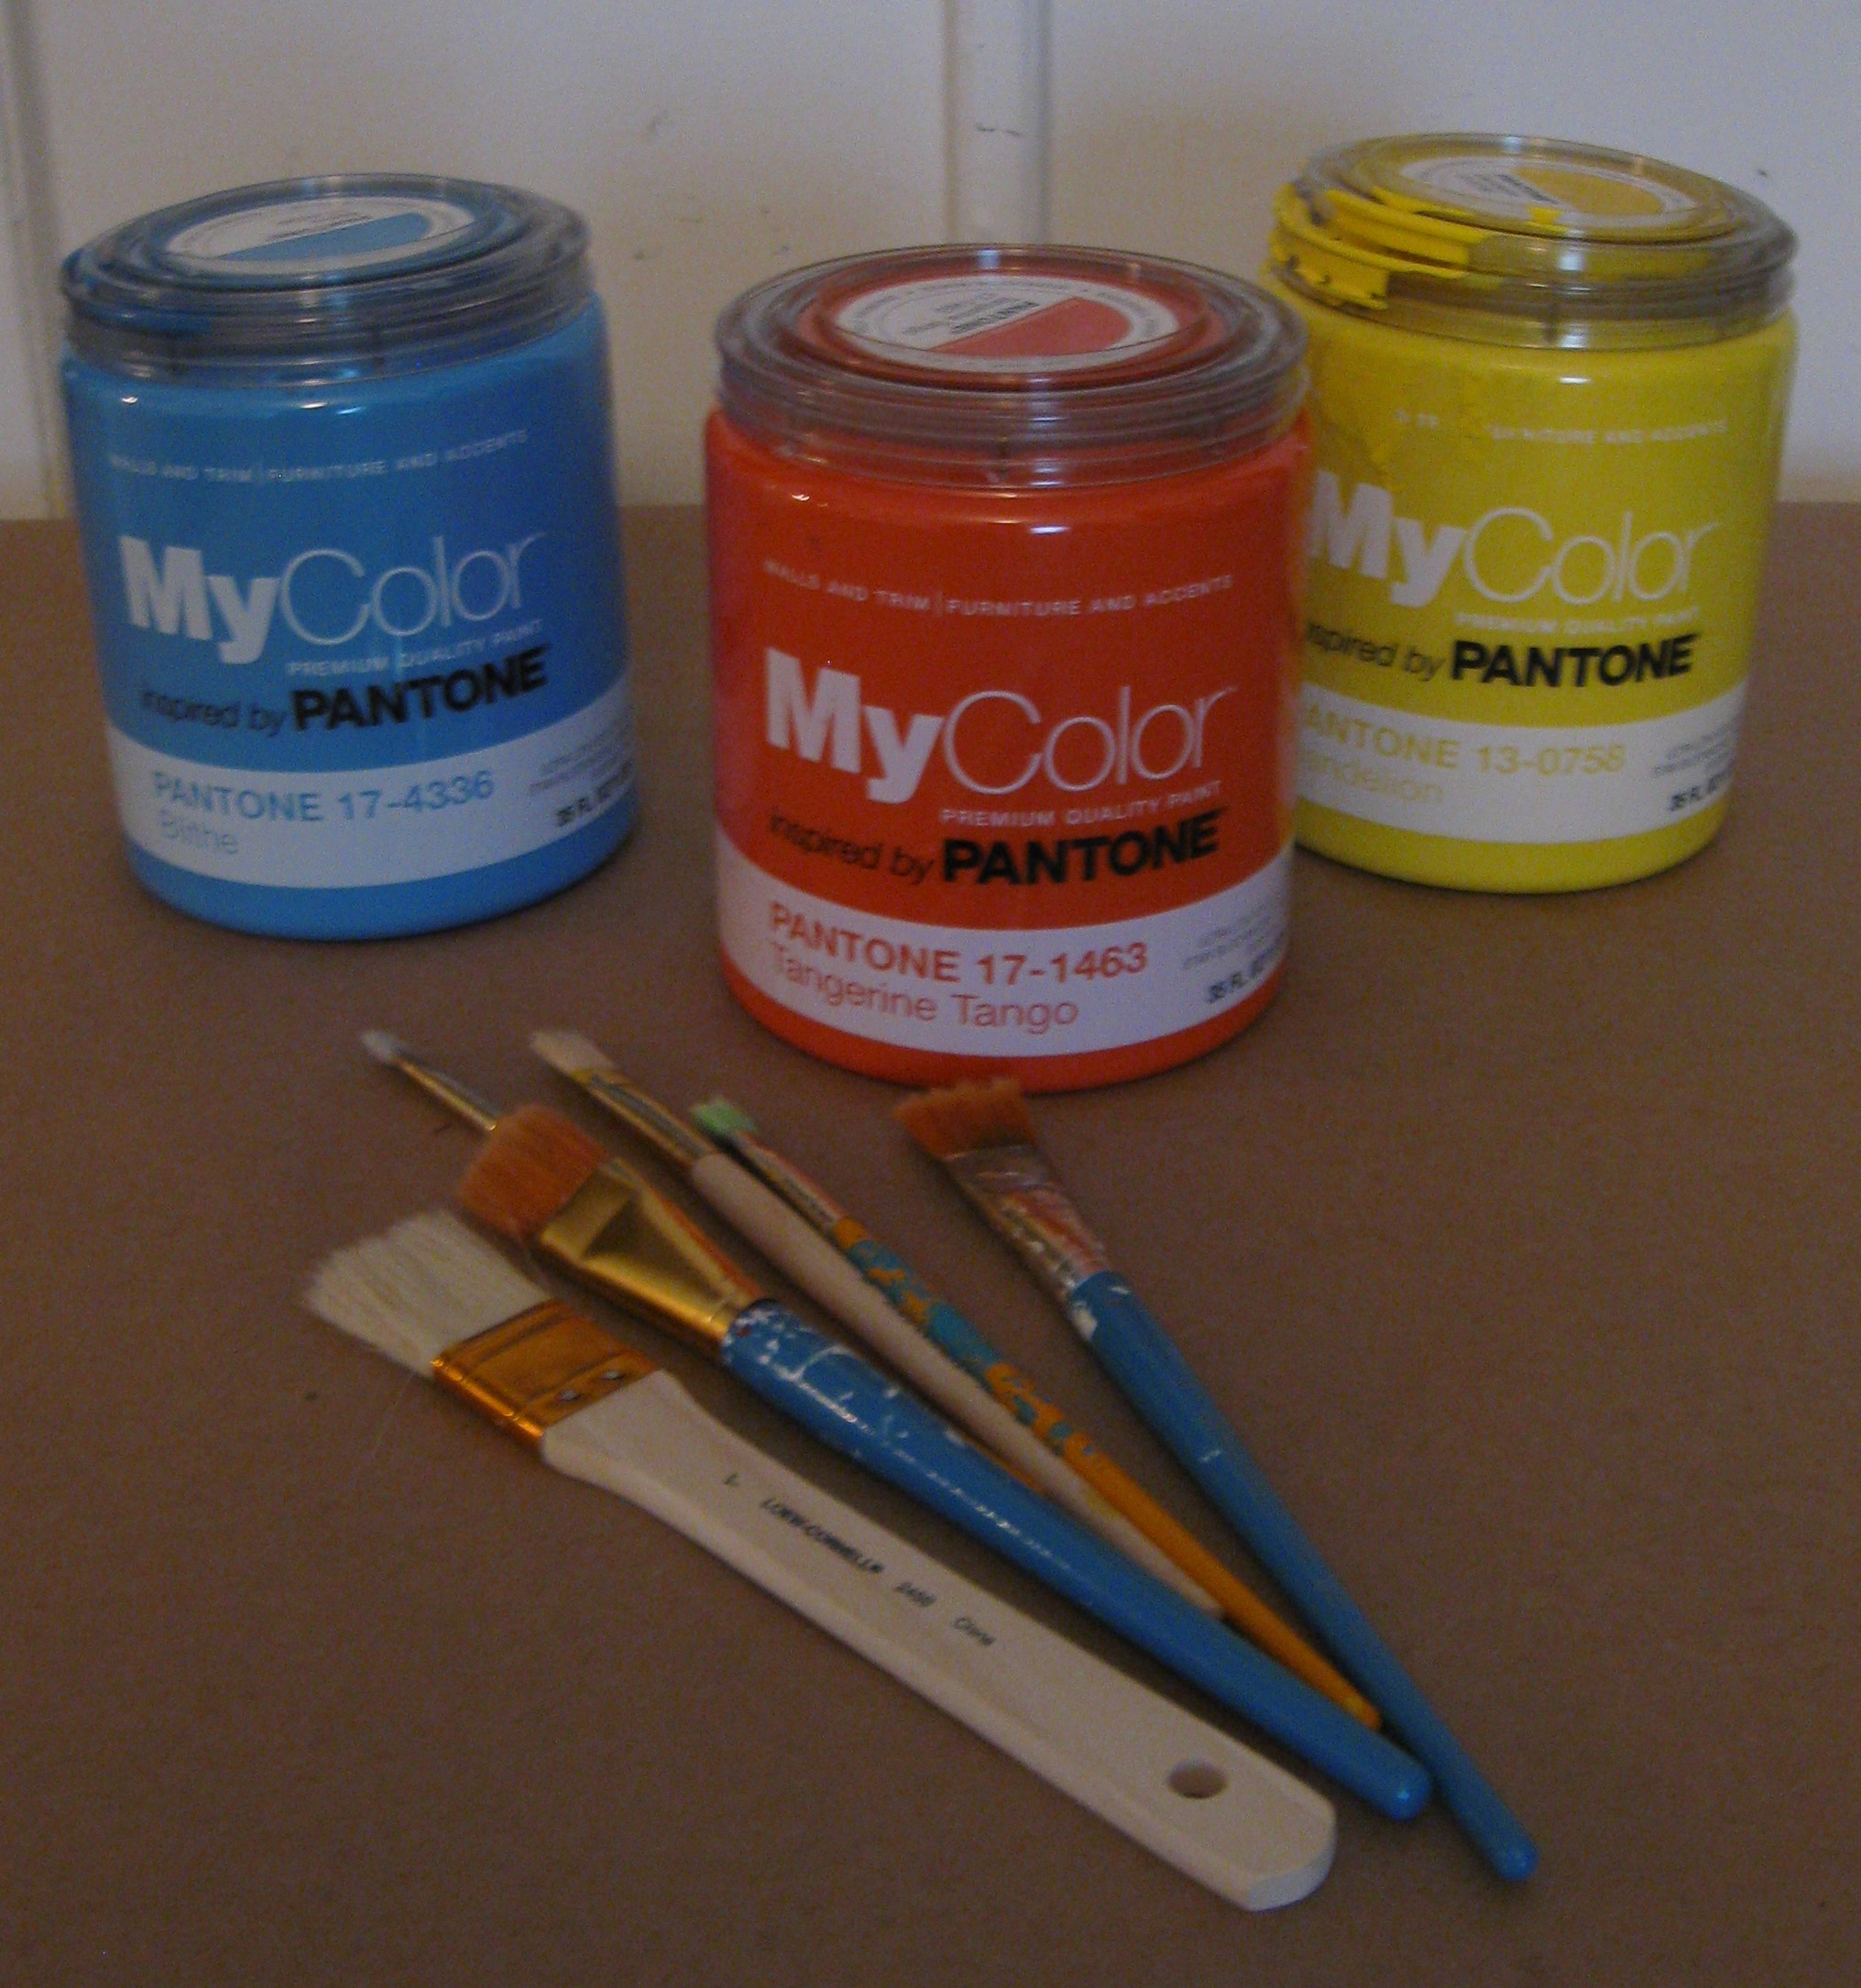 MyColor inspired by Pantone paints